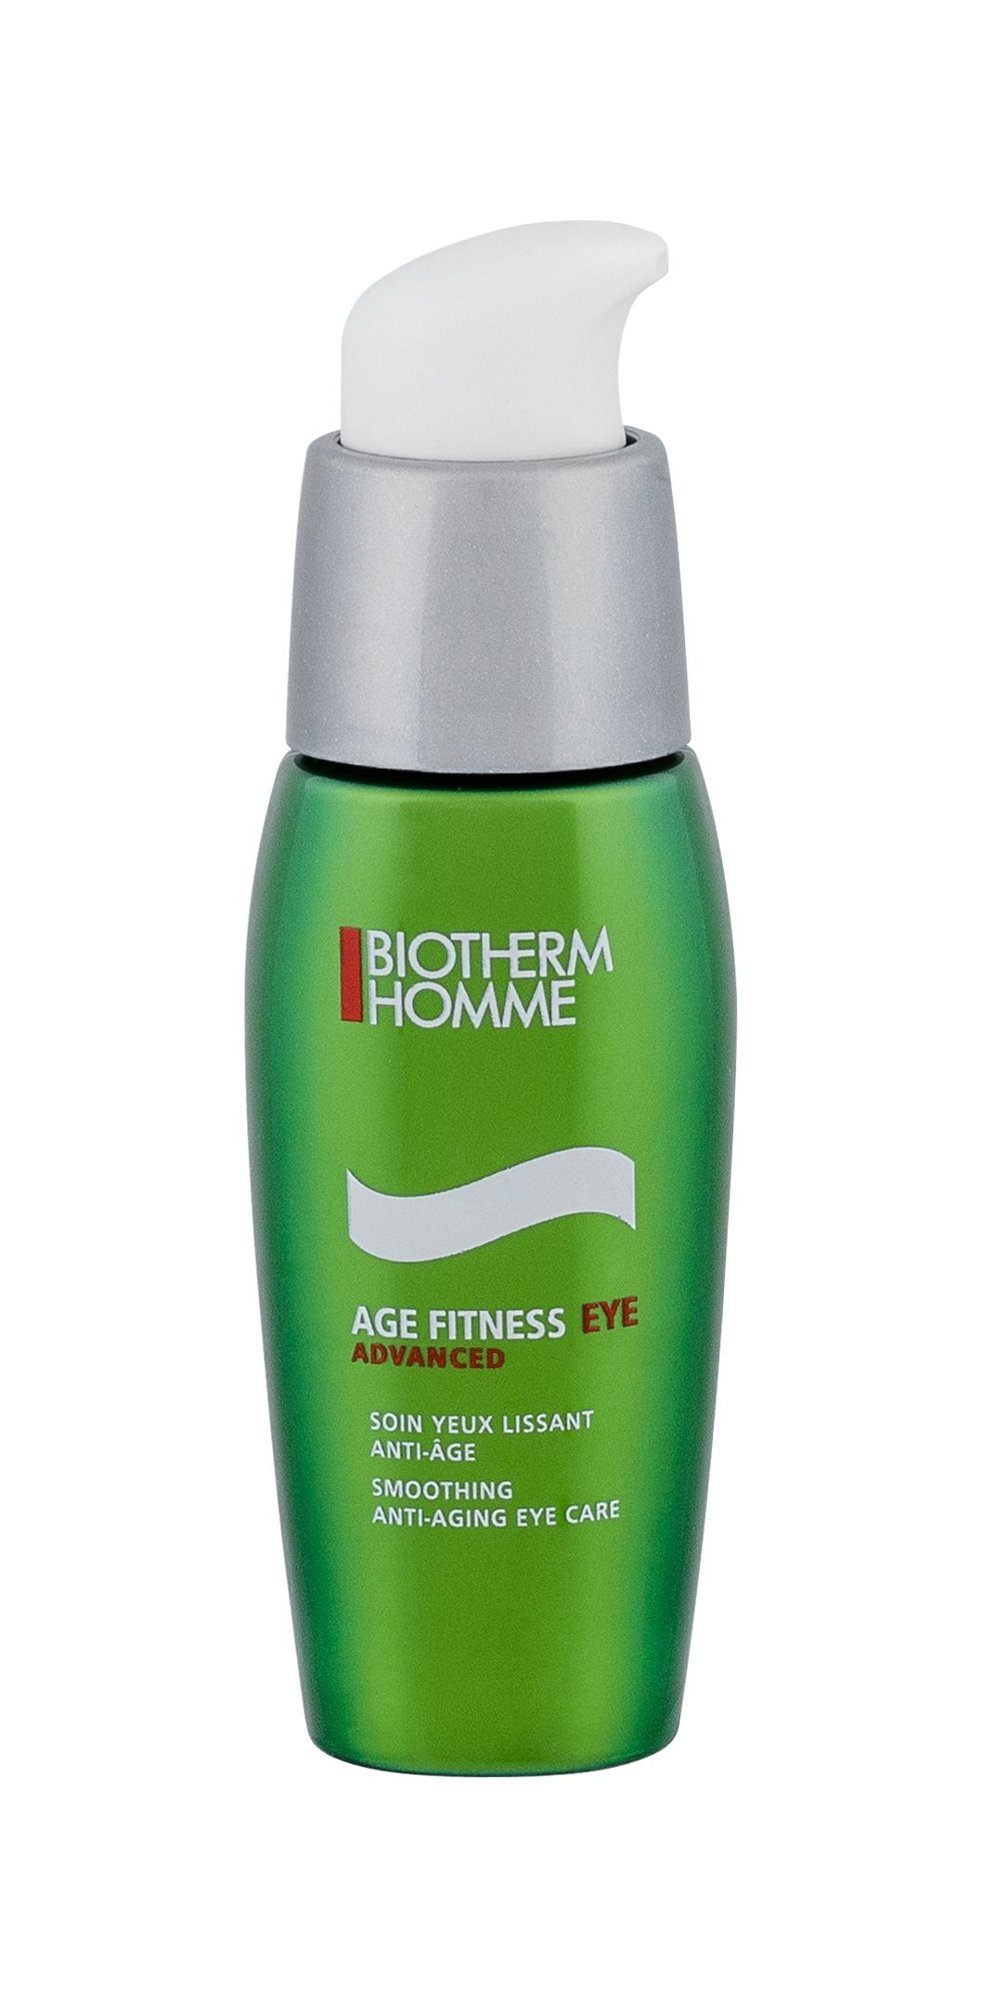 Biotherm Homme Age Fitness Cosmetic 15ml  Advanced